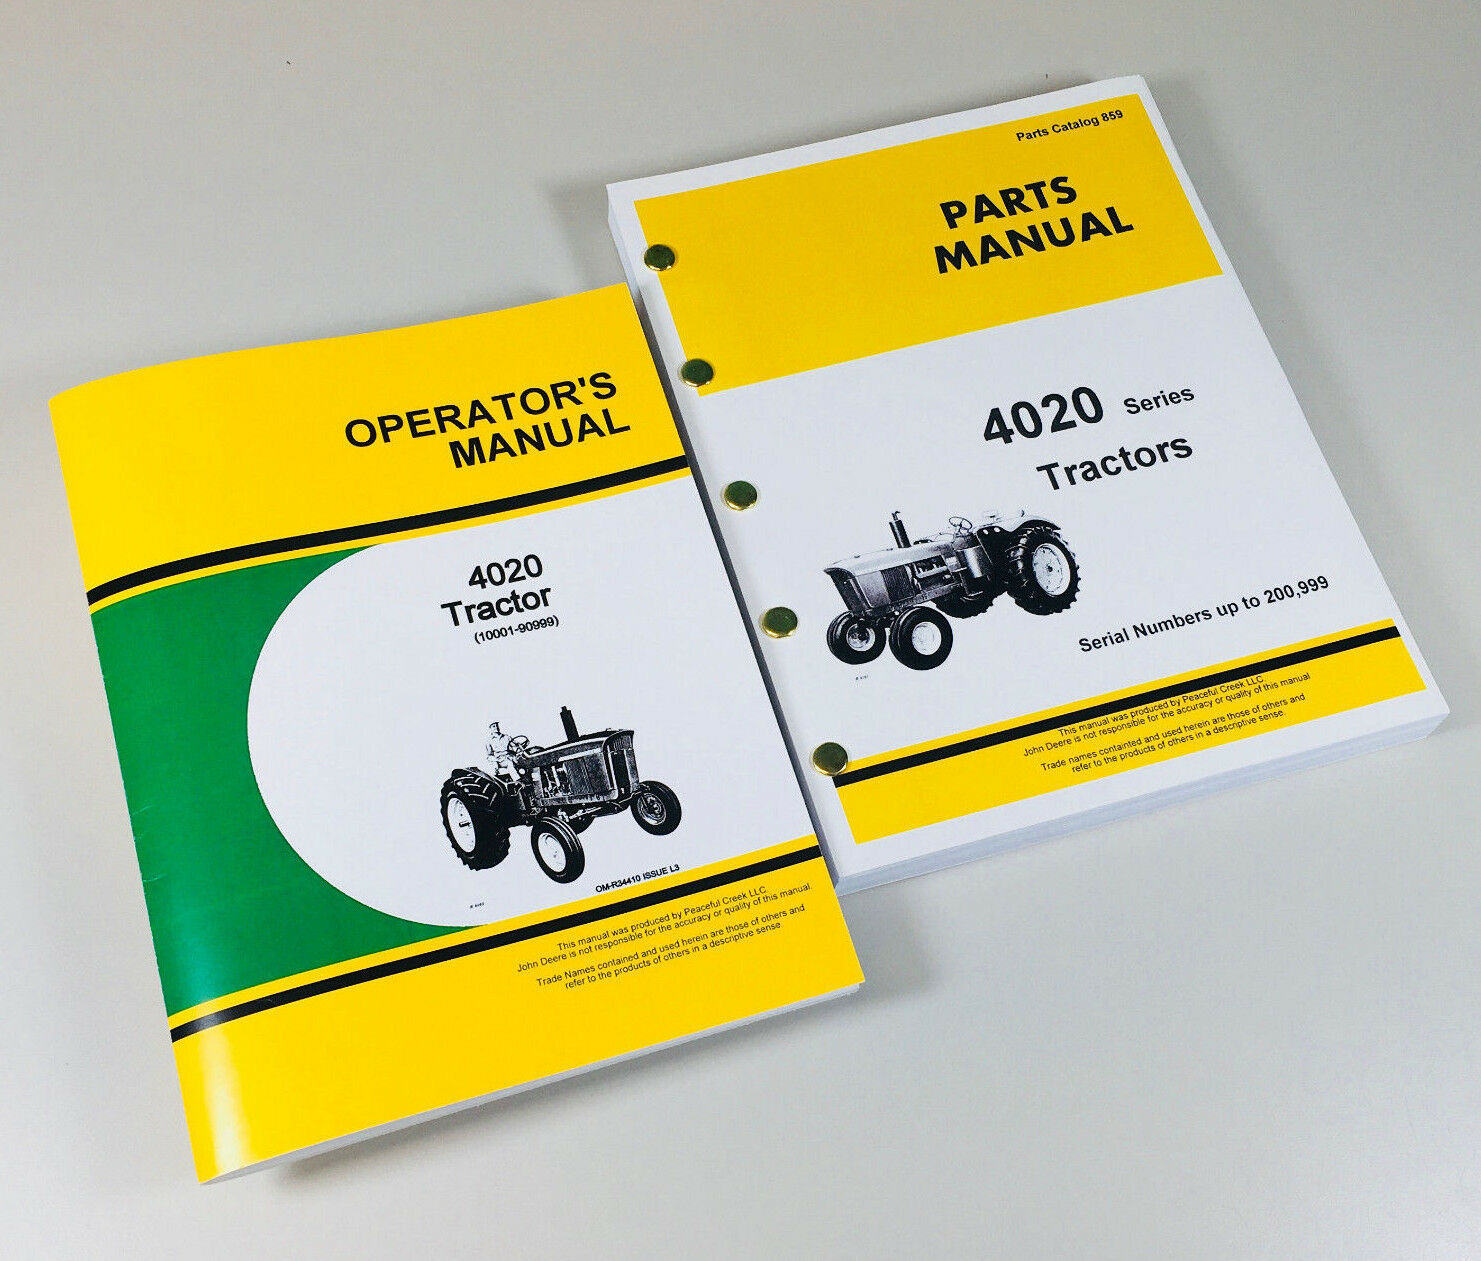 Reproduction of the Factory Manuals